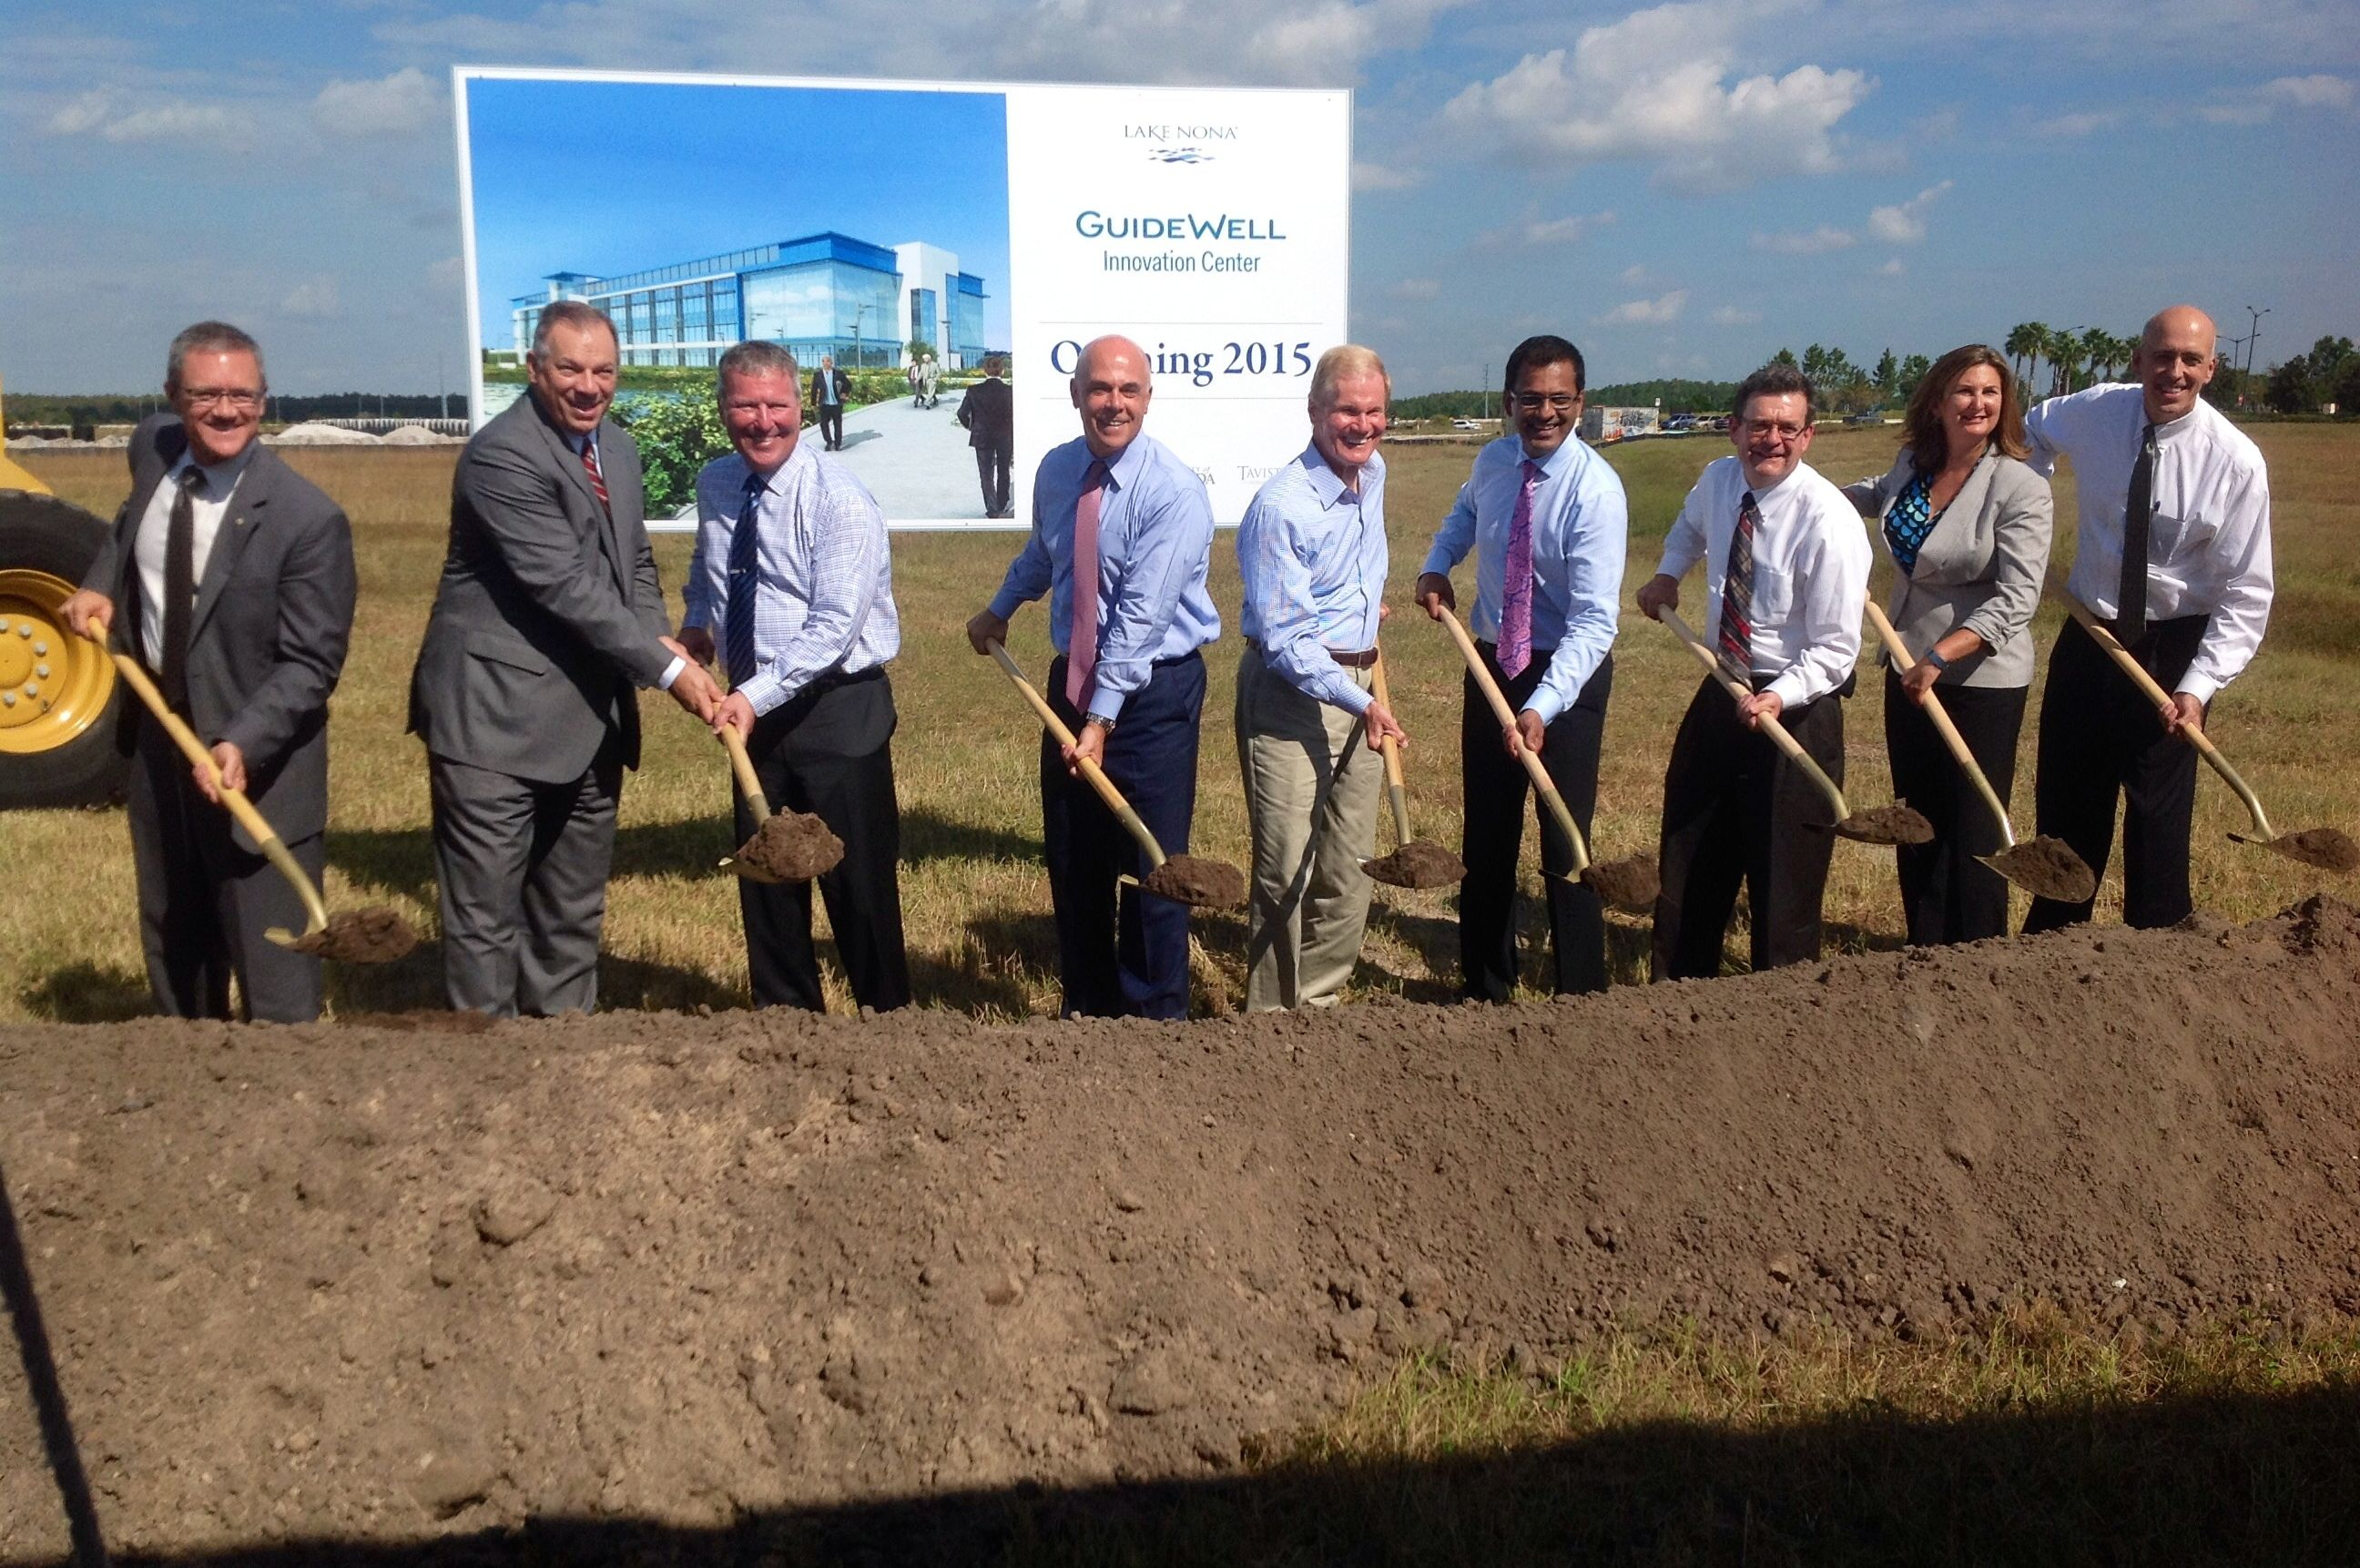 Construction will start this week on the new $30 million GuideWell Innovation Center in Lake Nona's Medical City.